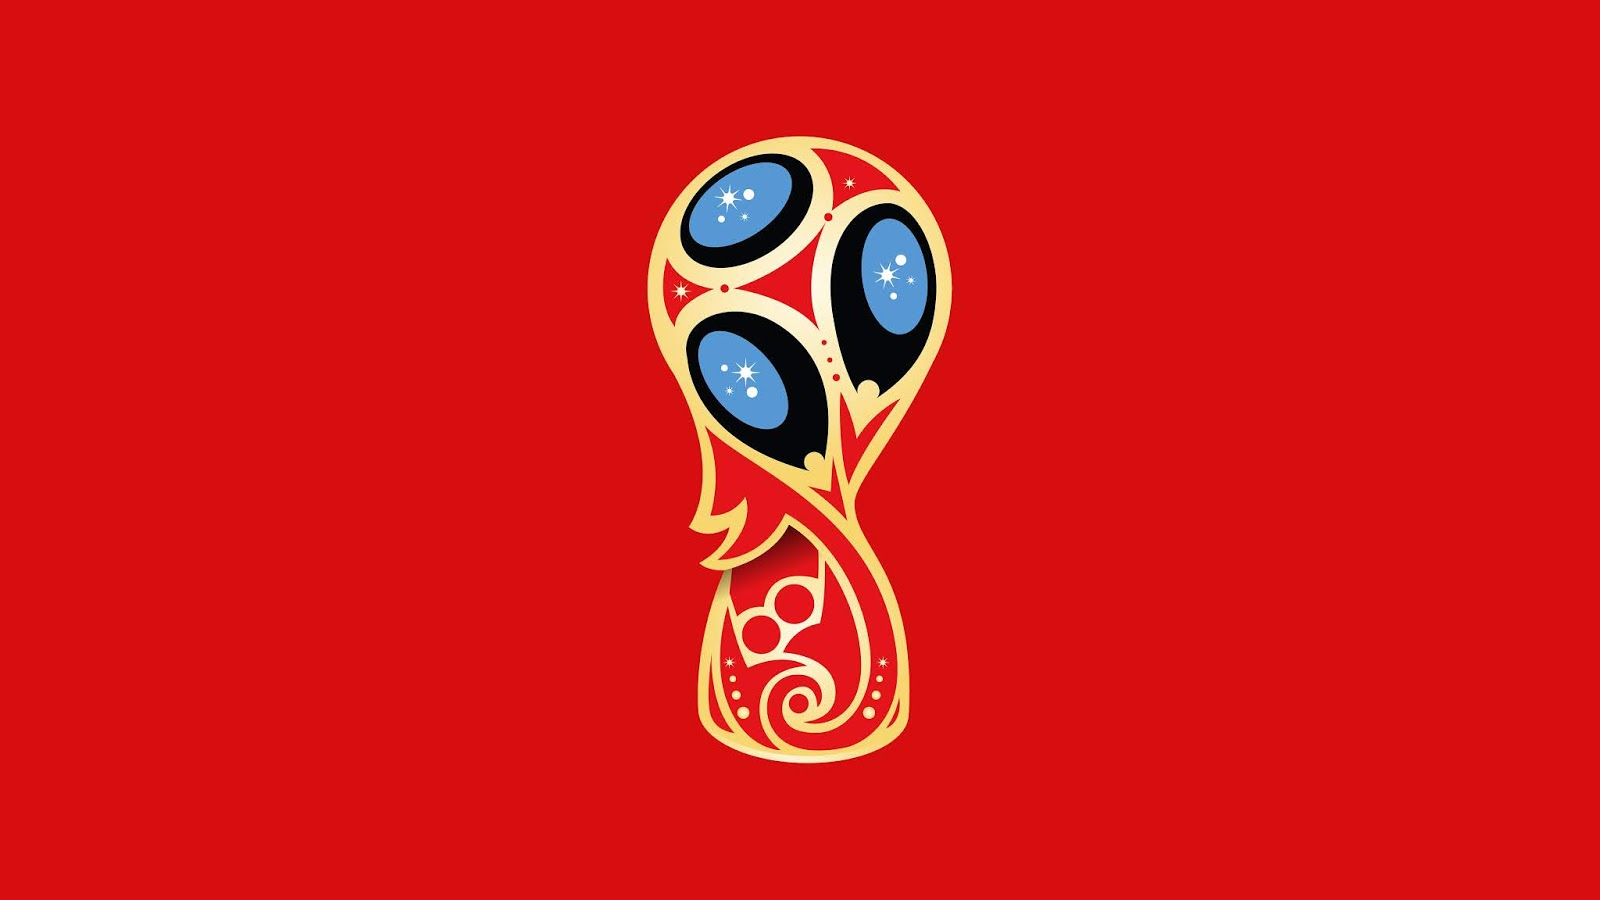 2018 FIFA World Cup, Russia, Trophy, Red, Minimal, FIFA World Cup, 5K, Sports